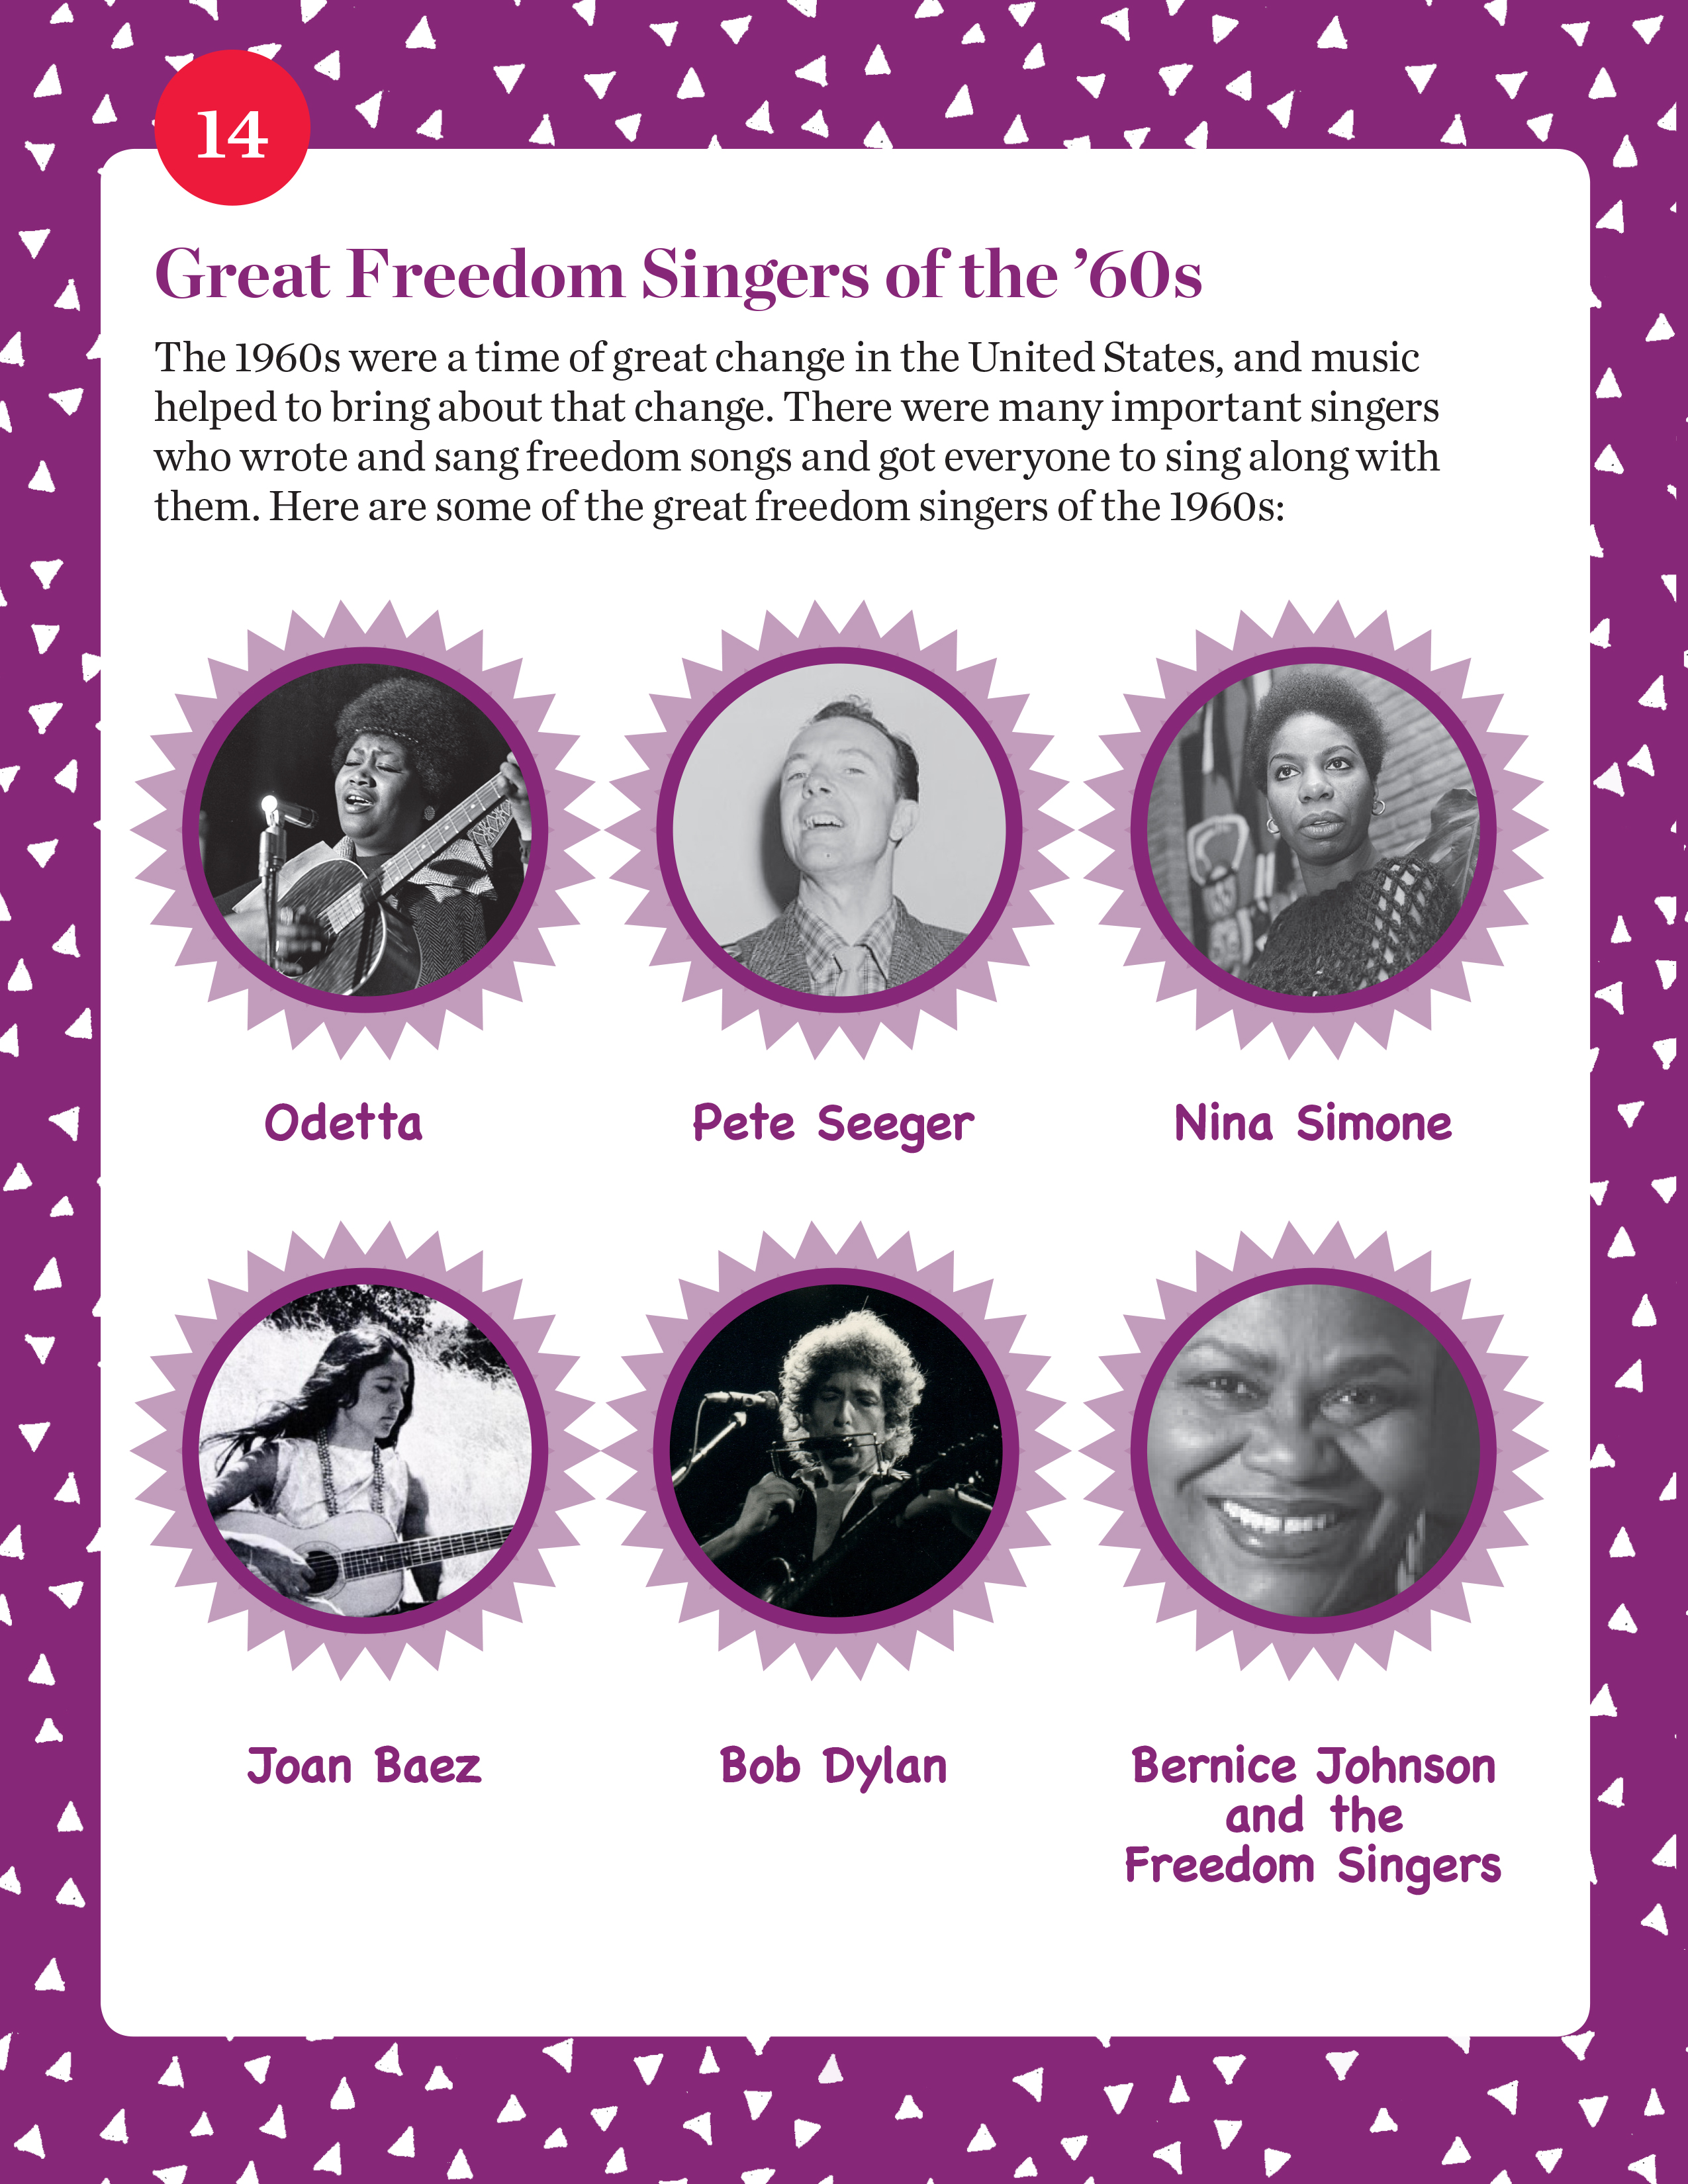 Great Freedom Singers of the '60s